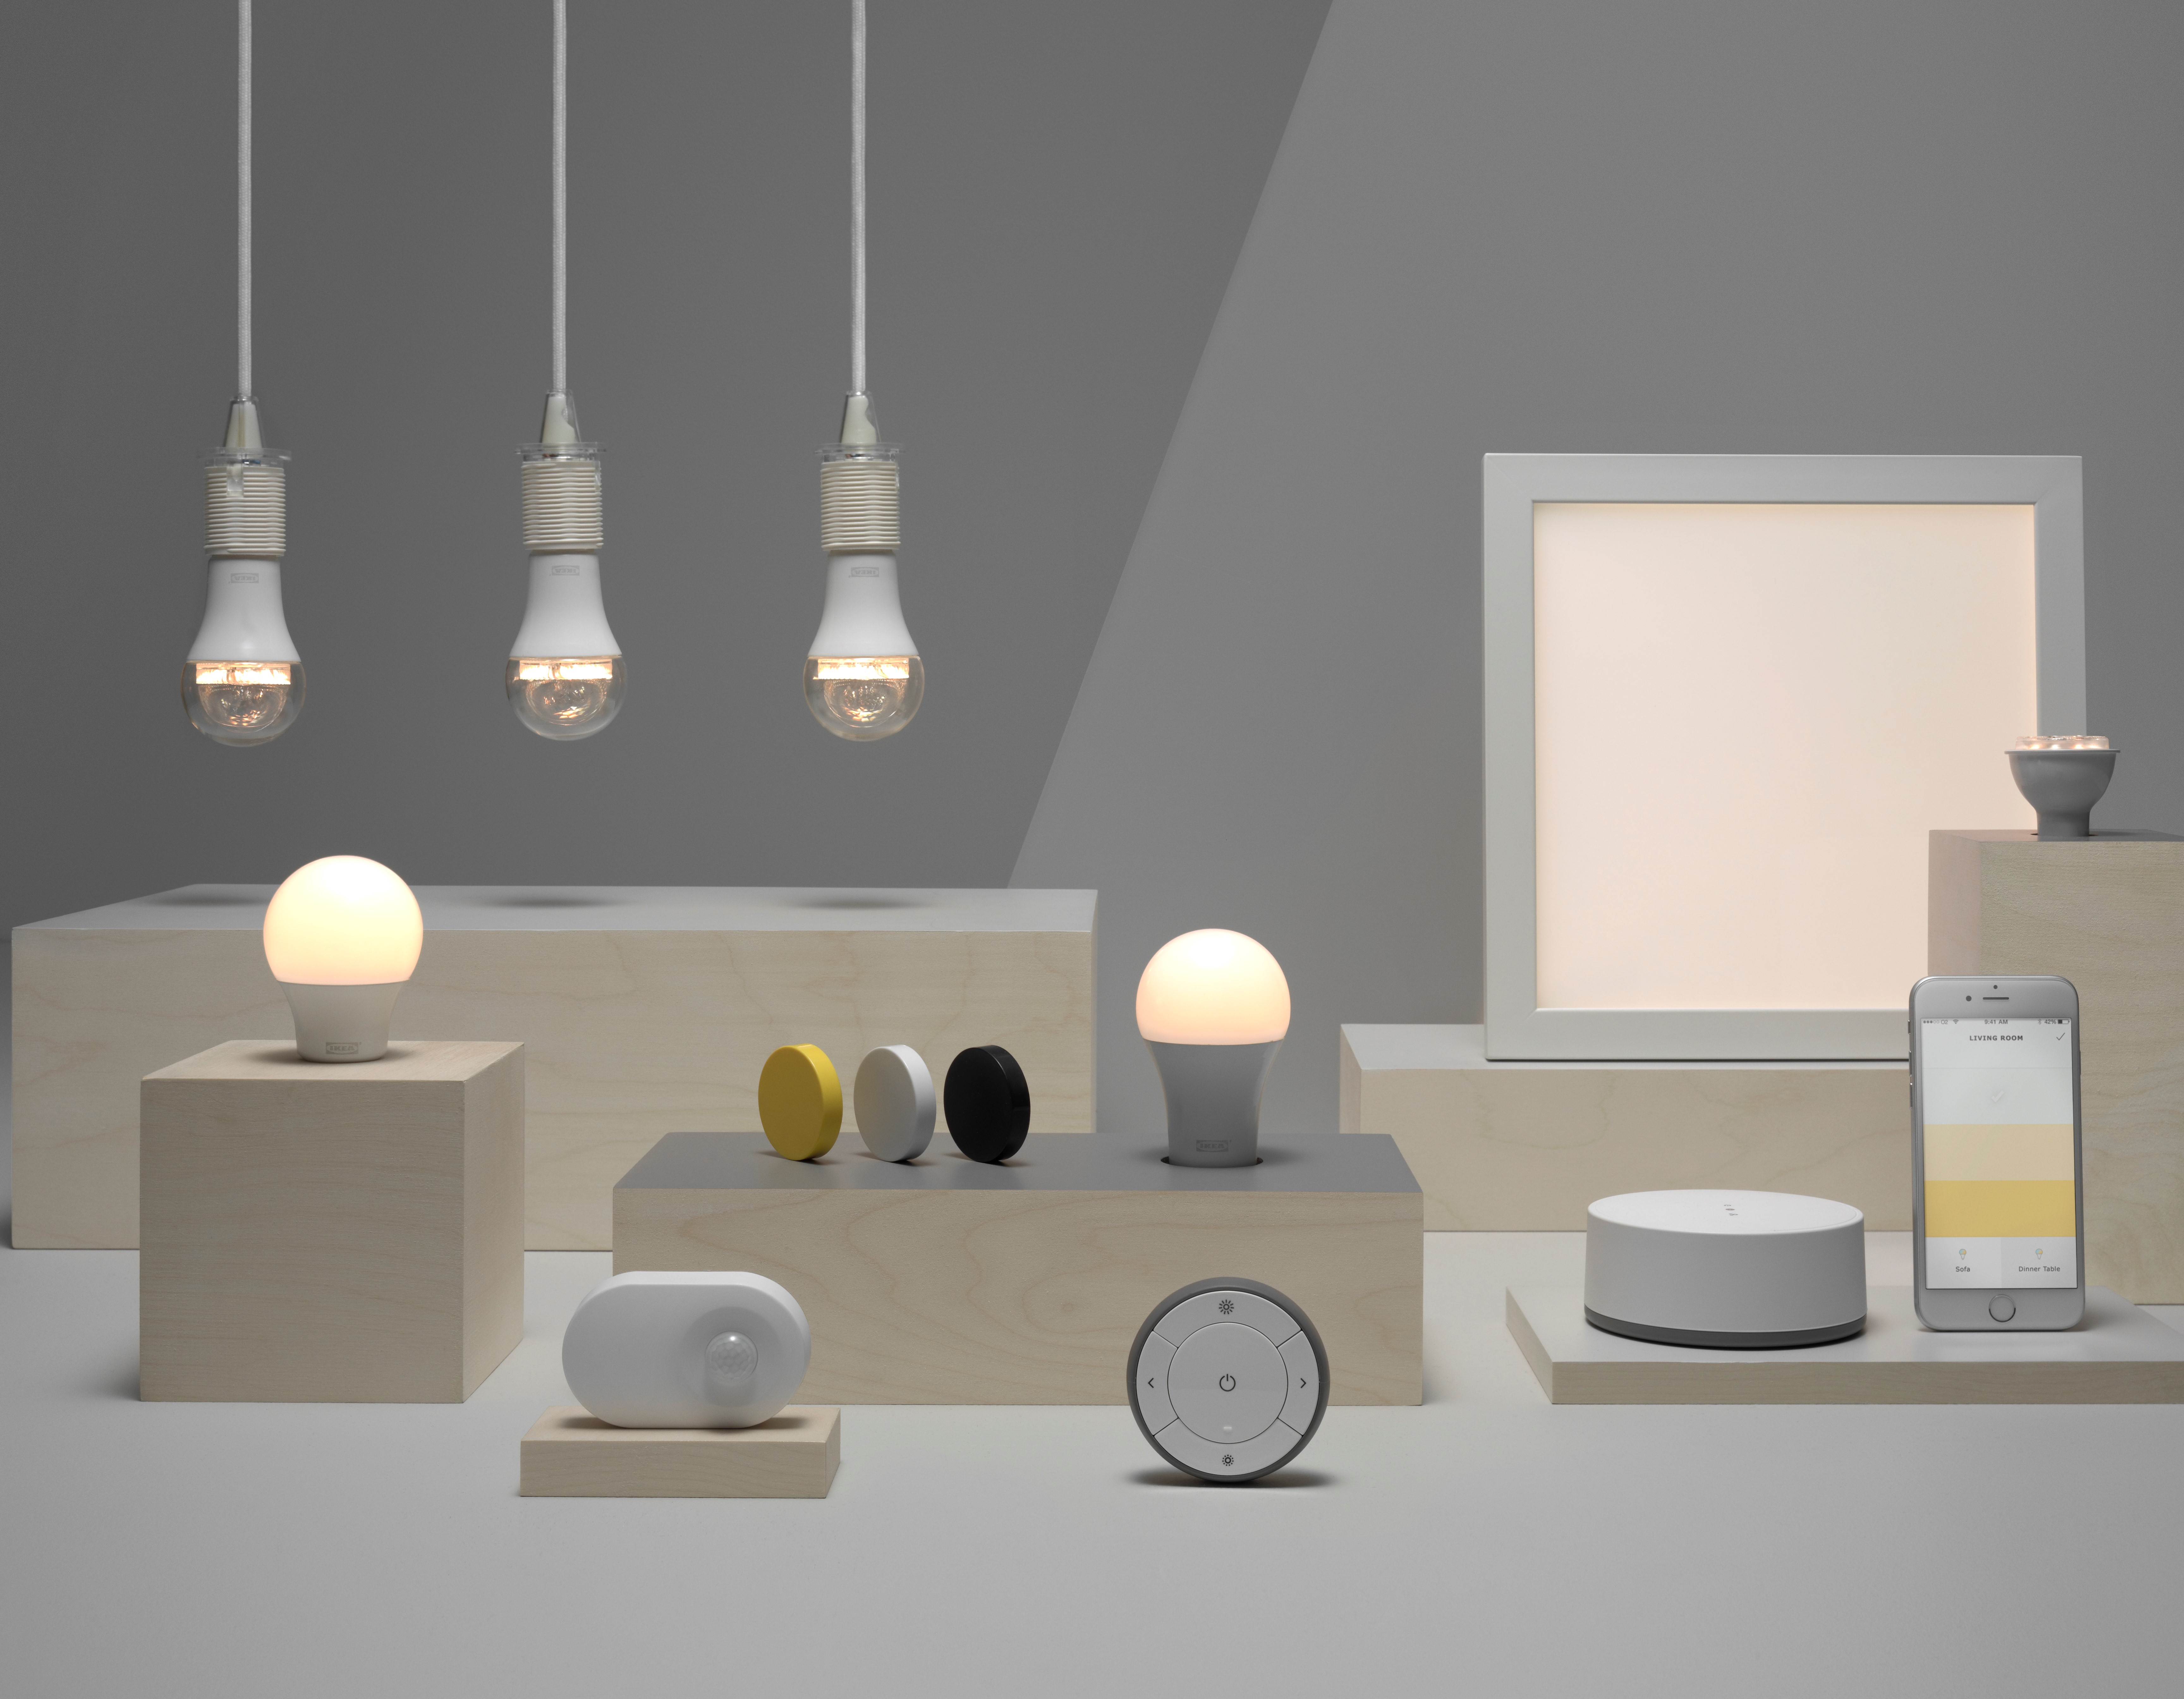 Smart Home Light Bulbs Set To Go Mainstream As Ikea Enters The Wireless Controlled Lightdimmer 80356911 Yellow 80349888 White 00356910 Black Trdfri Dimming Kit Warm 30338849 Trdfrie Remote Control 80338941